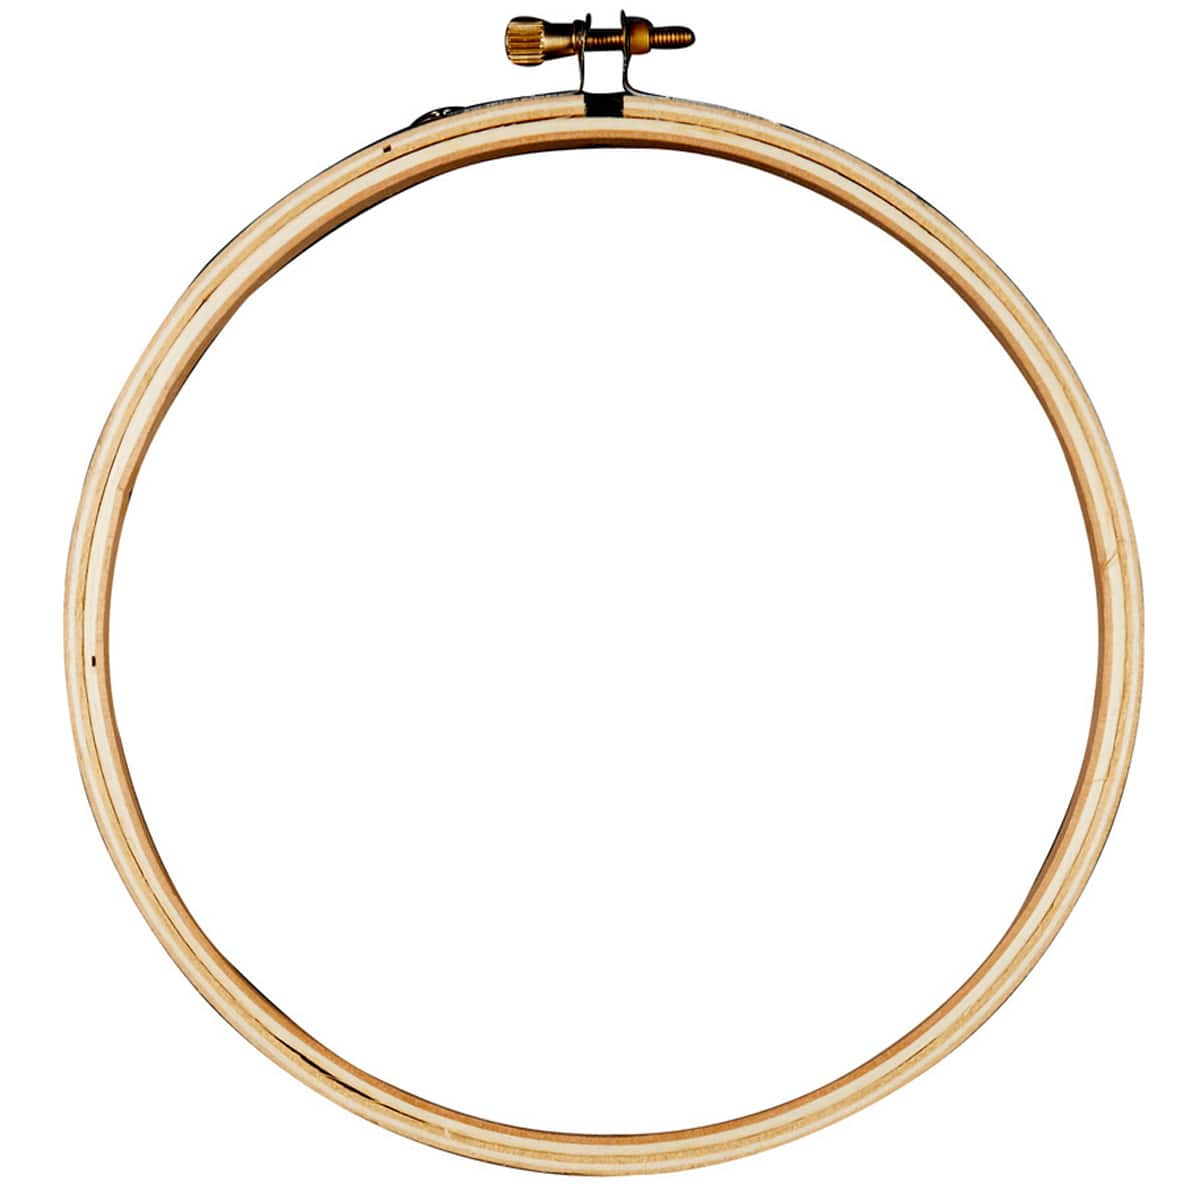 Wooden Embroidery Hoop size 12 inches